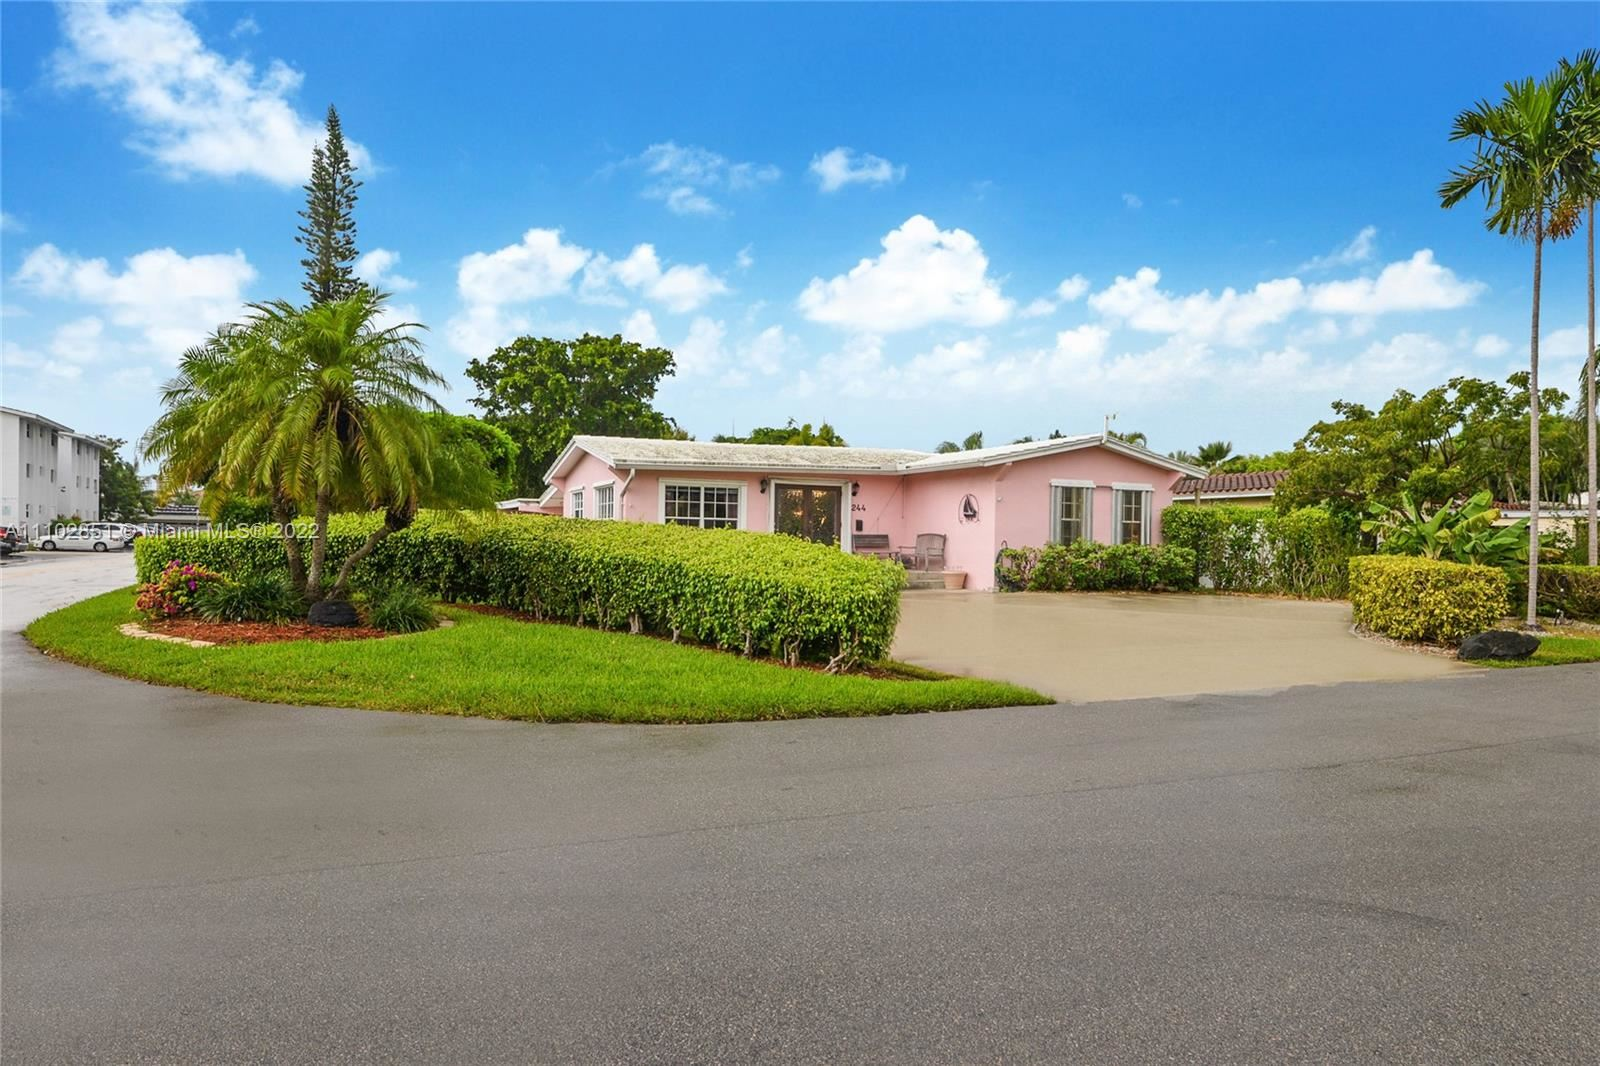 244 Hibiscus Ave, Lauderdale by the Sea, FL 33308 - #: A11102851